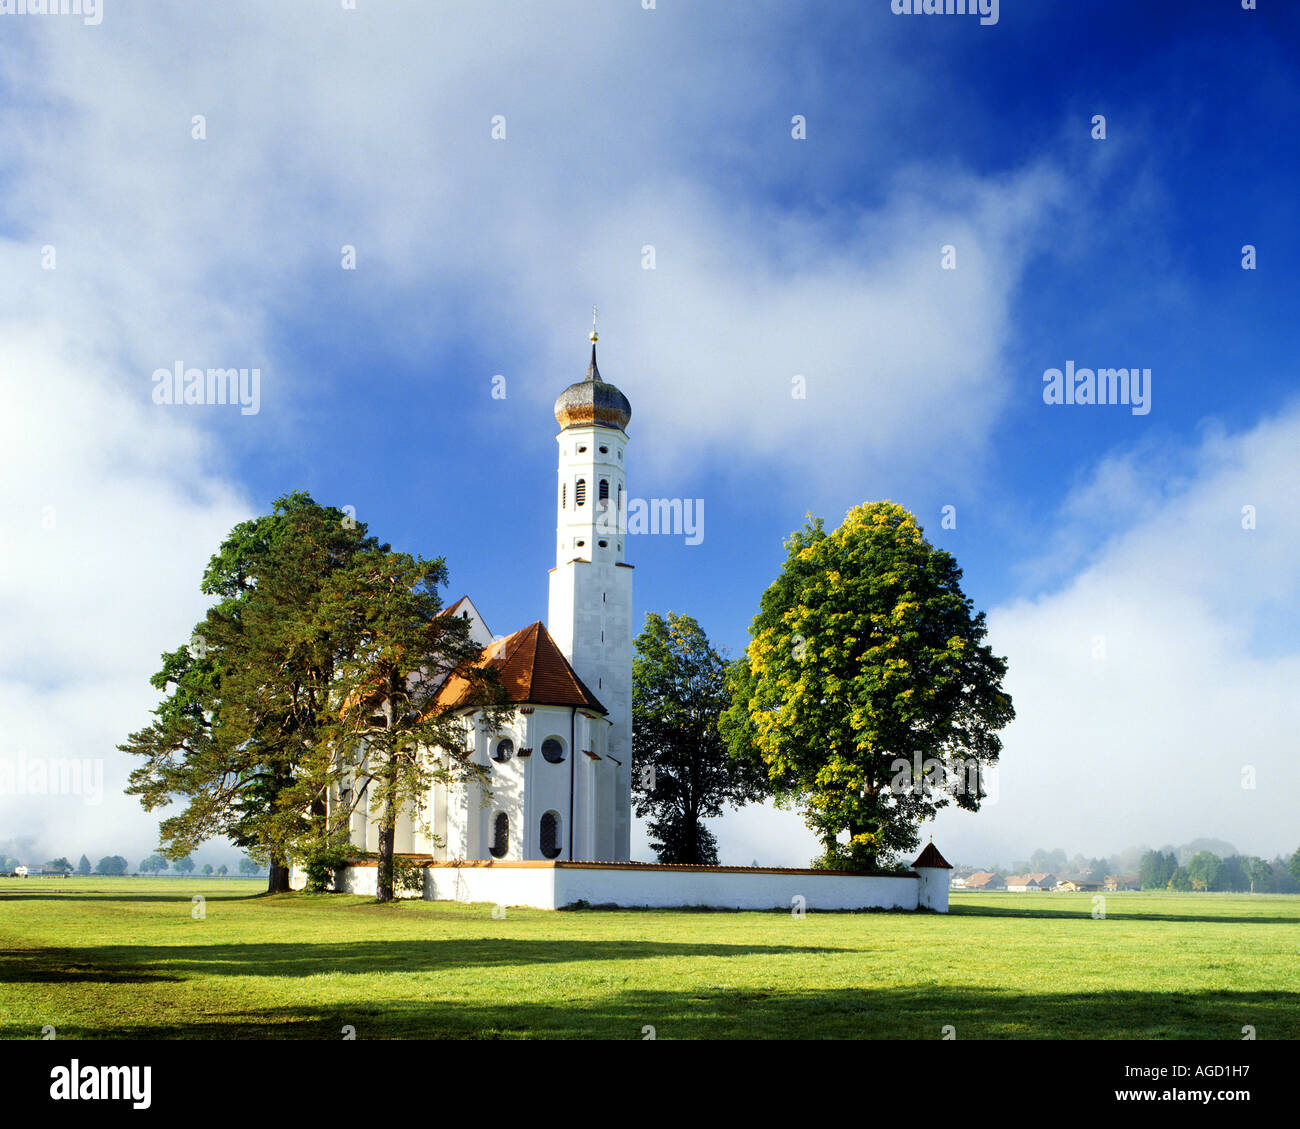 DE - BAVARIA:  St.Coloman near Schwangau in the Allgäu - Stock Image